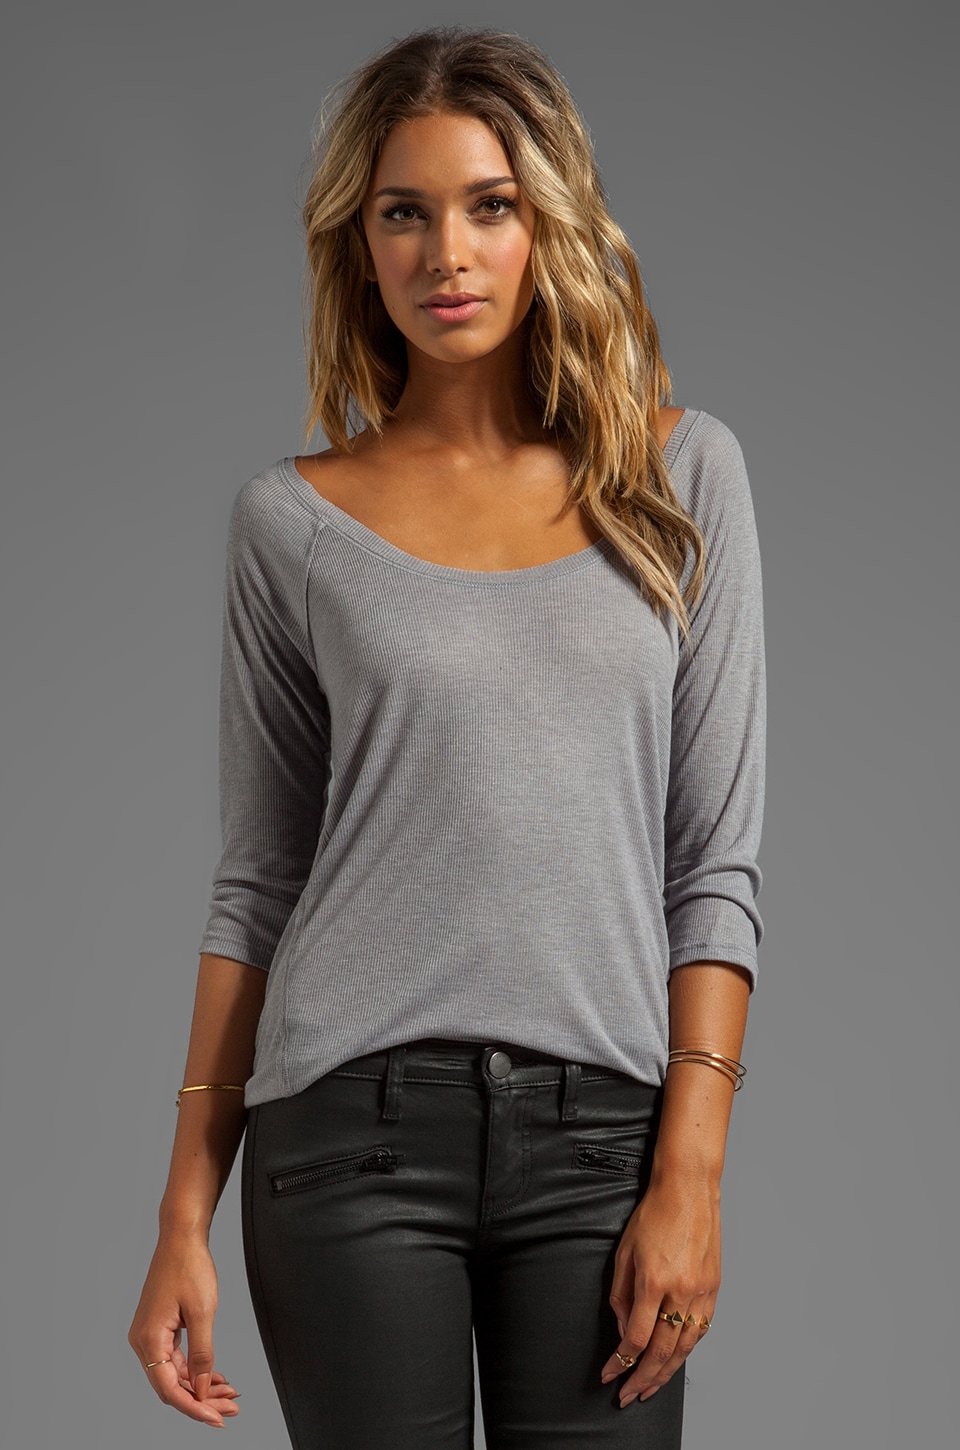 Splendid Drapey Rib Long Sleeve in Dark Heather Grey